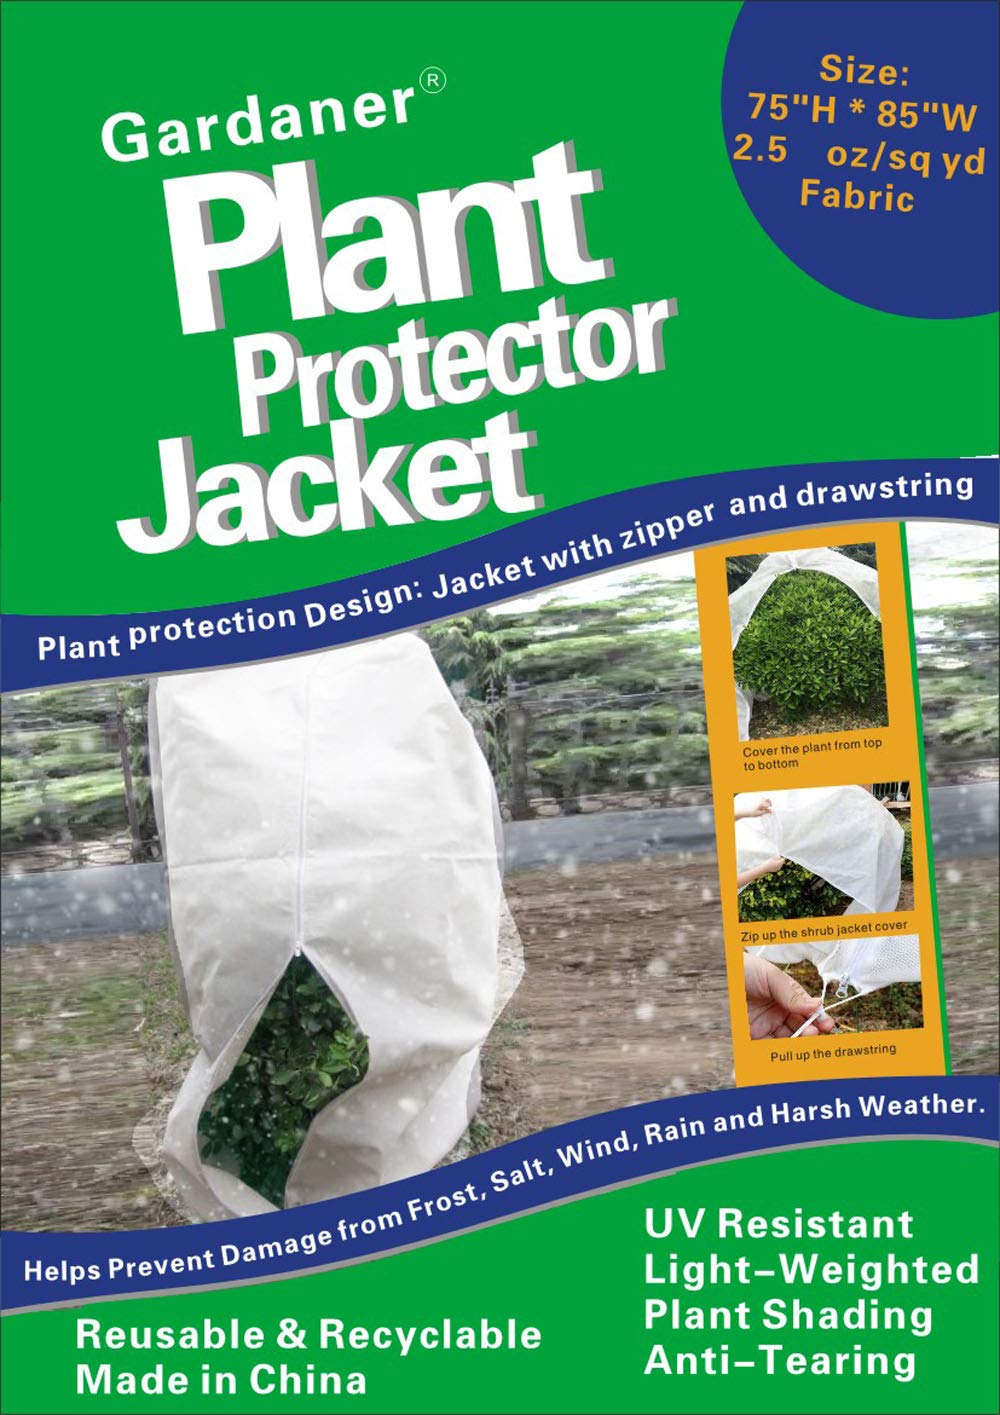 Gardaner Plant Covers Freeze Protection Plant Frost Blanket – 2.5 oz yd 85 X 75 inch for Cold Weather, Reusable Shrub Jacket Covers with Zipper Drawstring